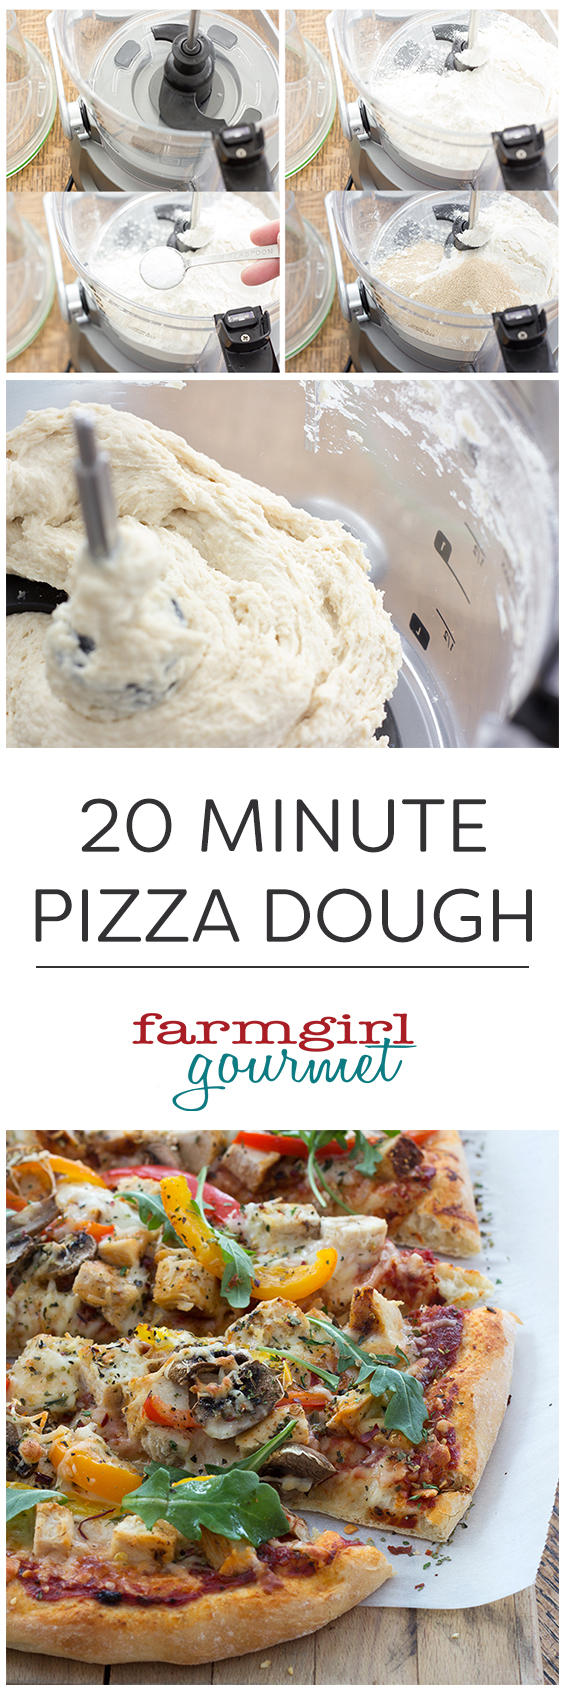 Easy 20 Minutes Pizza Dough Recipe | farmgirlgourmet.com